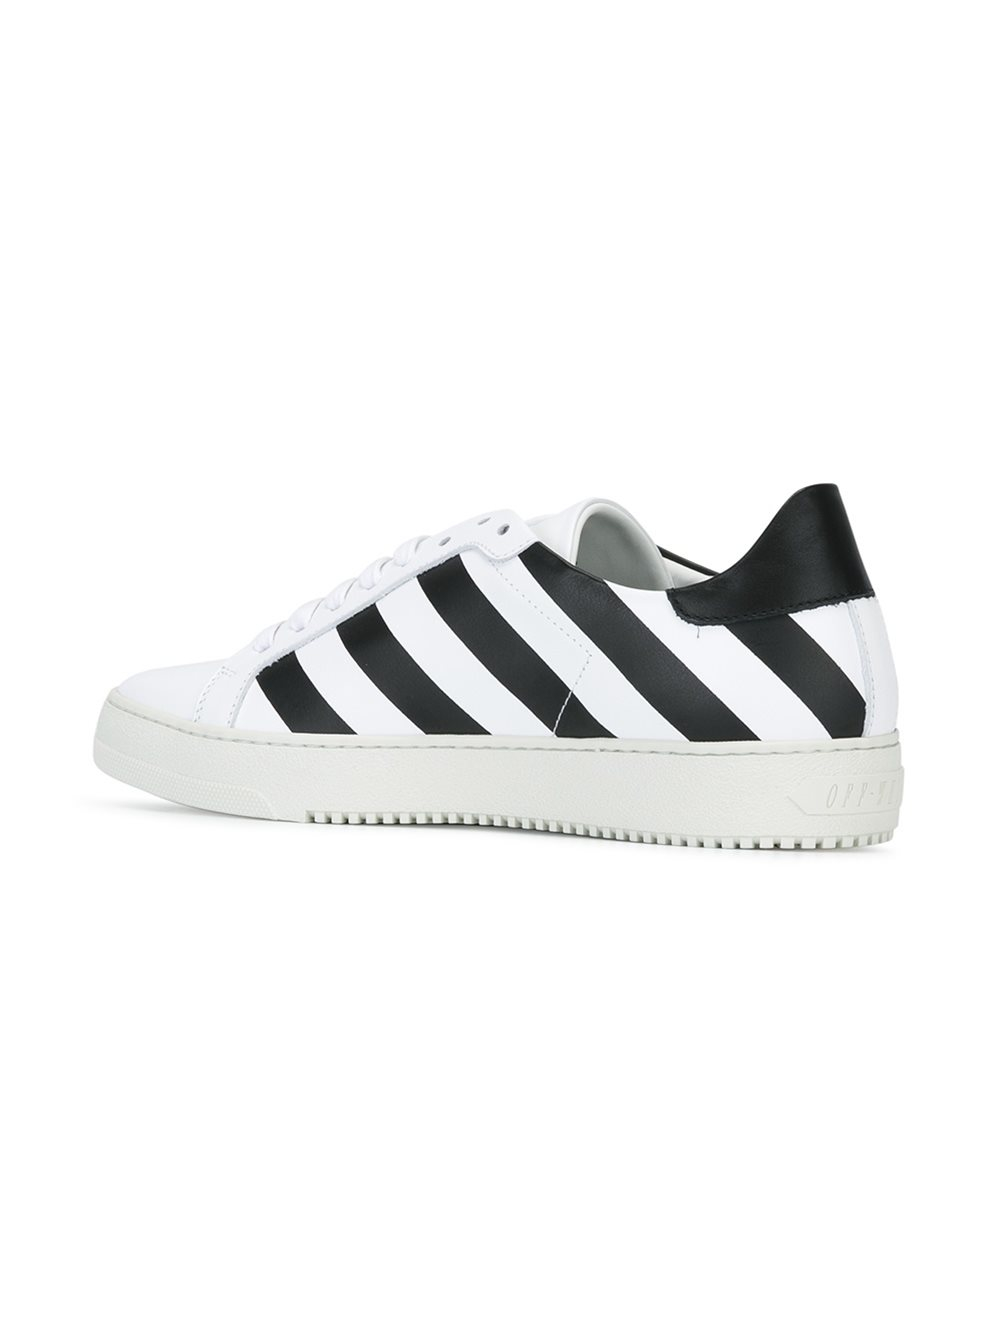 Off-White c/o Virgil Abloh Leather Classic Diagonals Sneakers